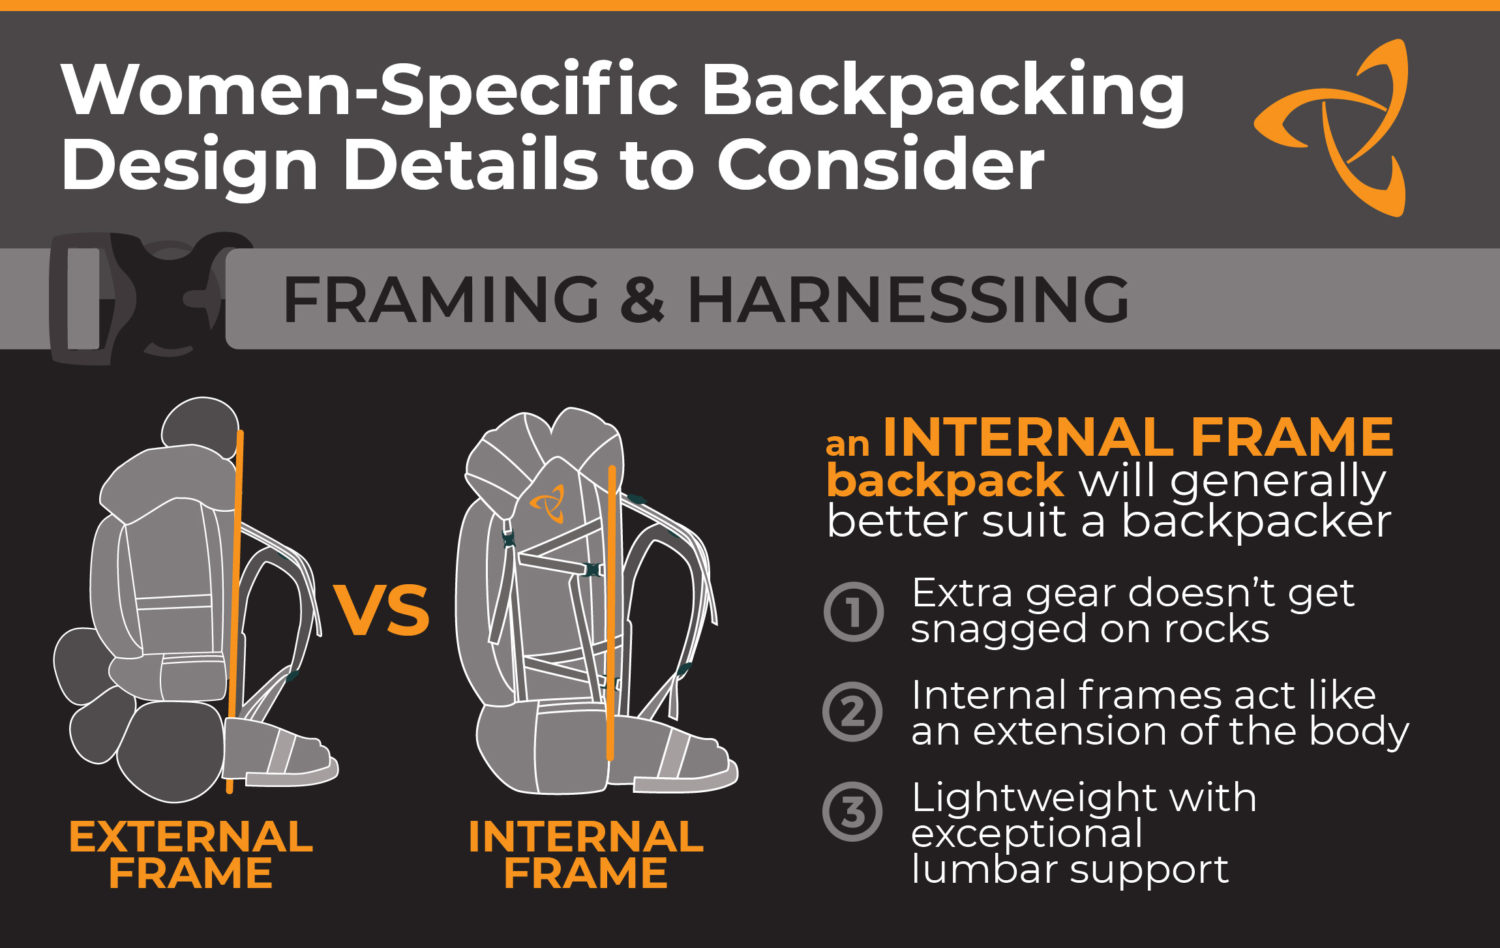 Women's-Specific Backpacking Design Details